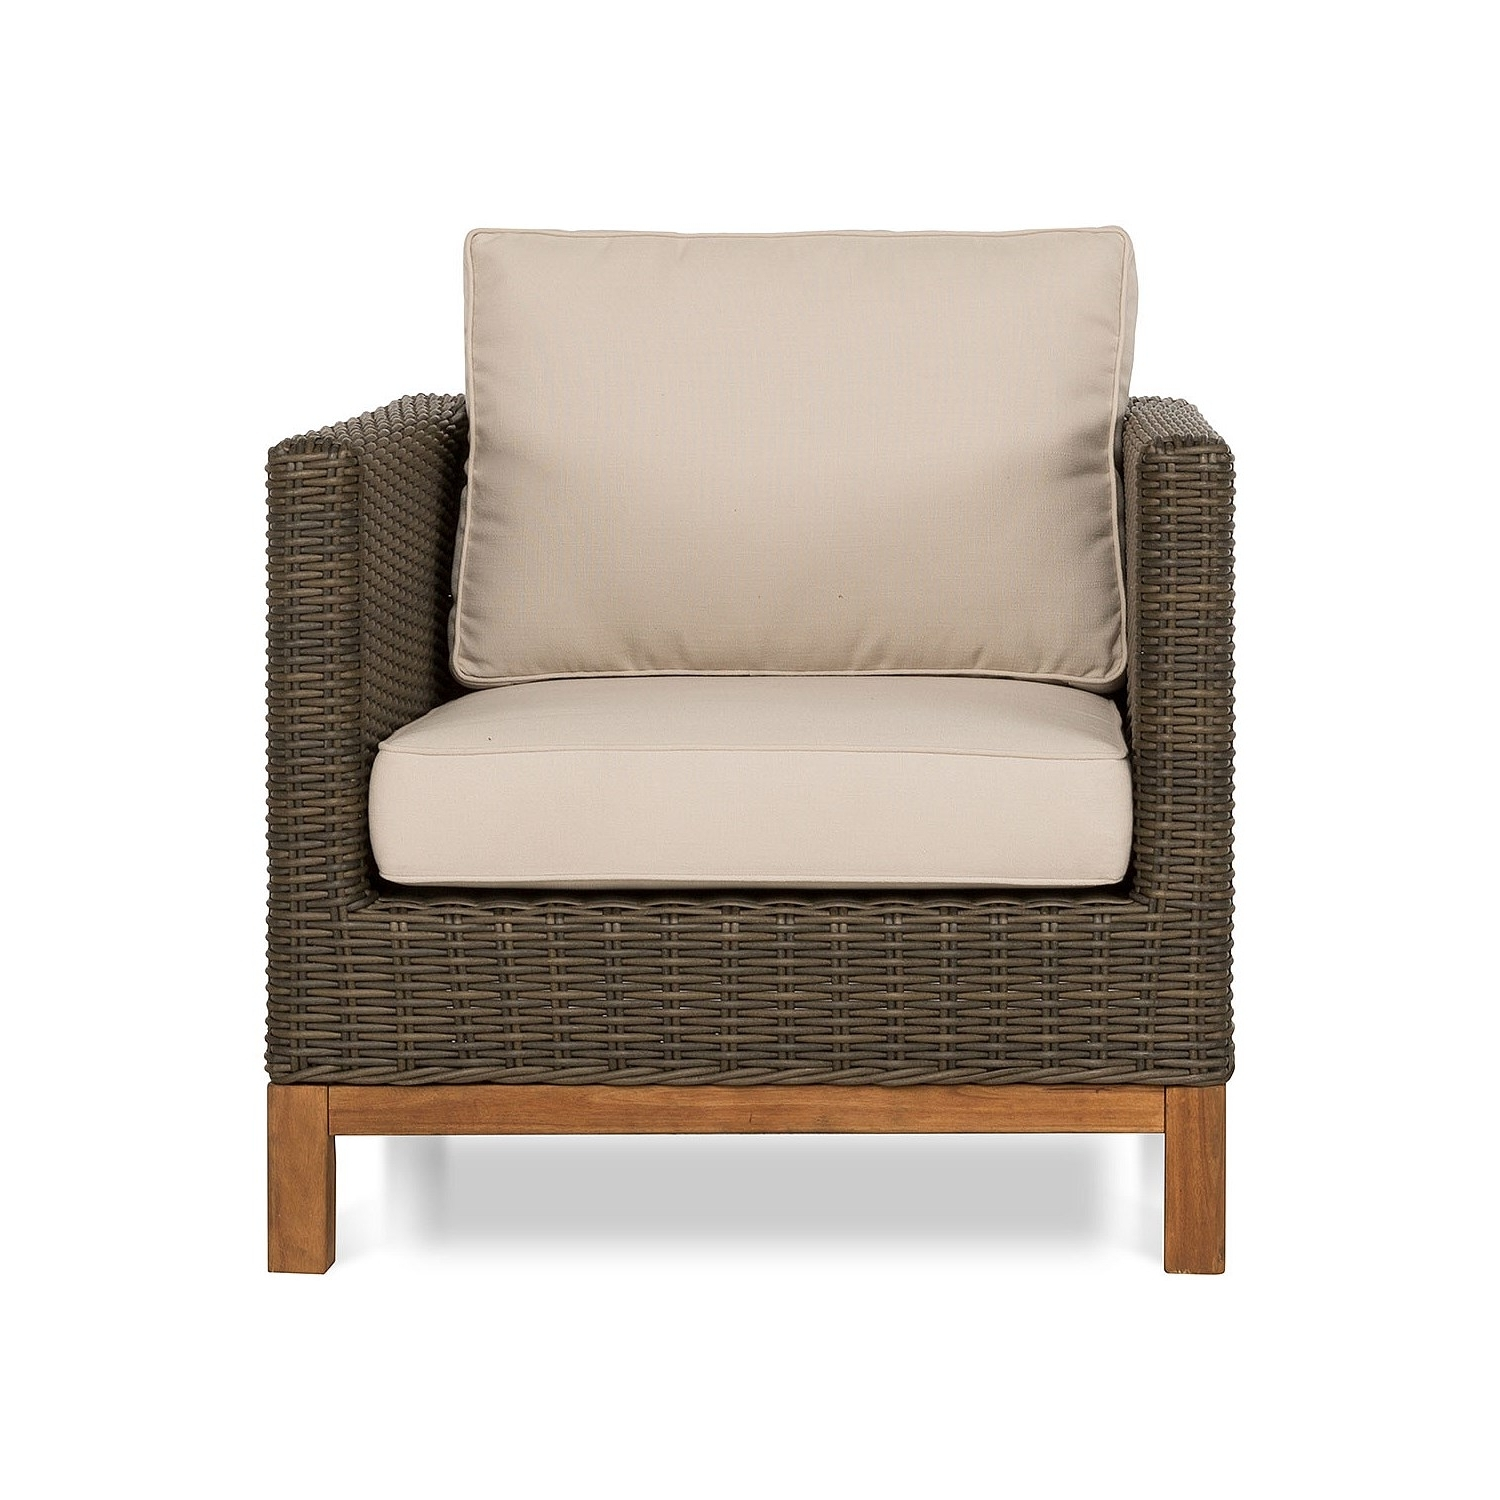 Armchair : Armchair With Ottoman Single Seat Sofa Chair Sofa Chair With Popular Single Seat Sofa Chairs (View 2 of 20)